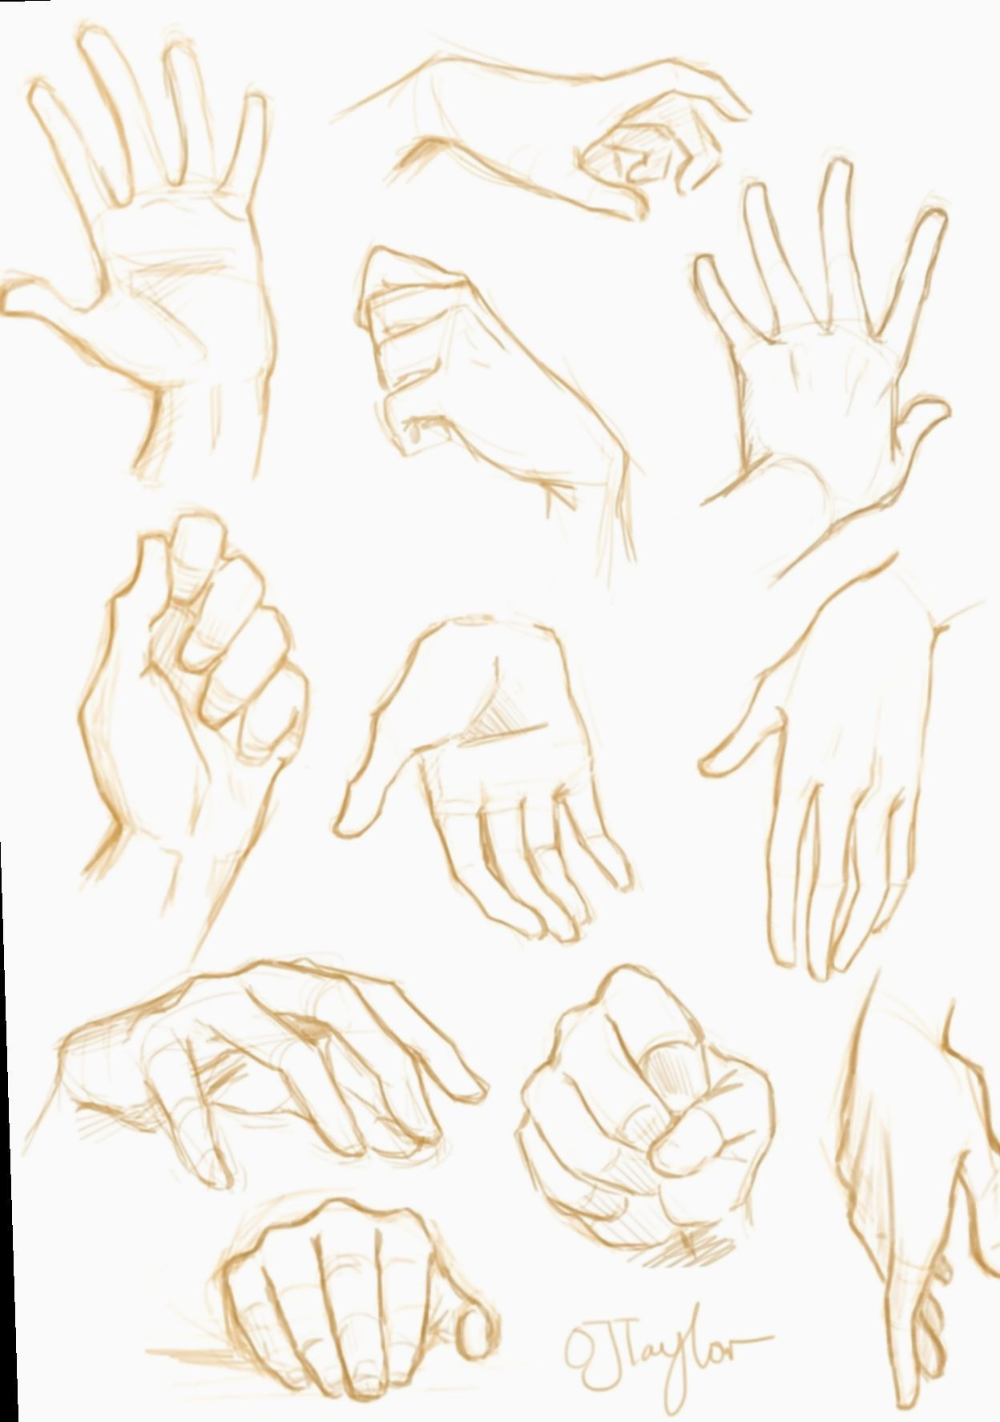 Anime Male Hands Google Search In 2020 Hand Drawing Reference Sketches Drawing Reference Poses